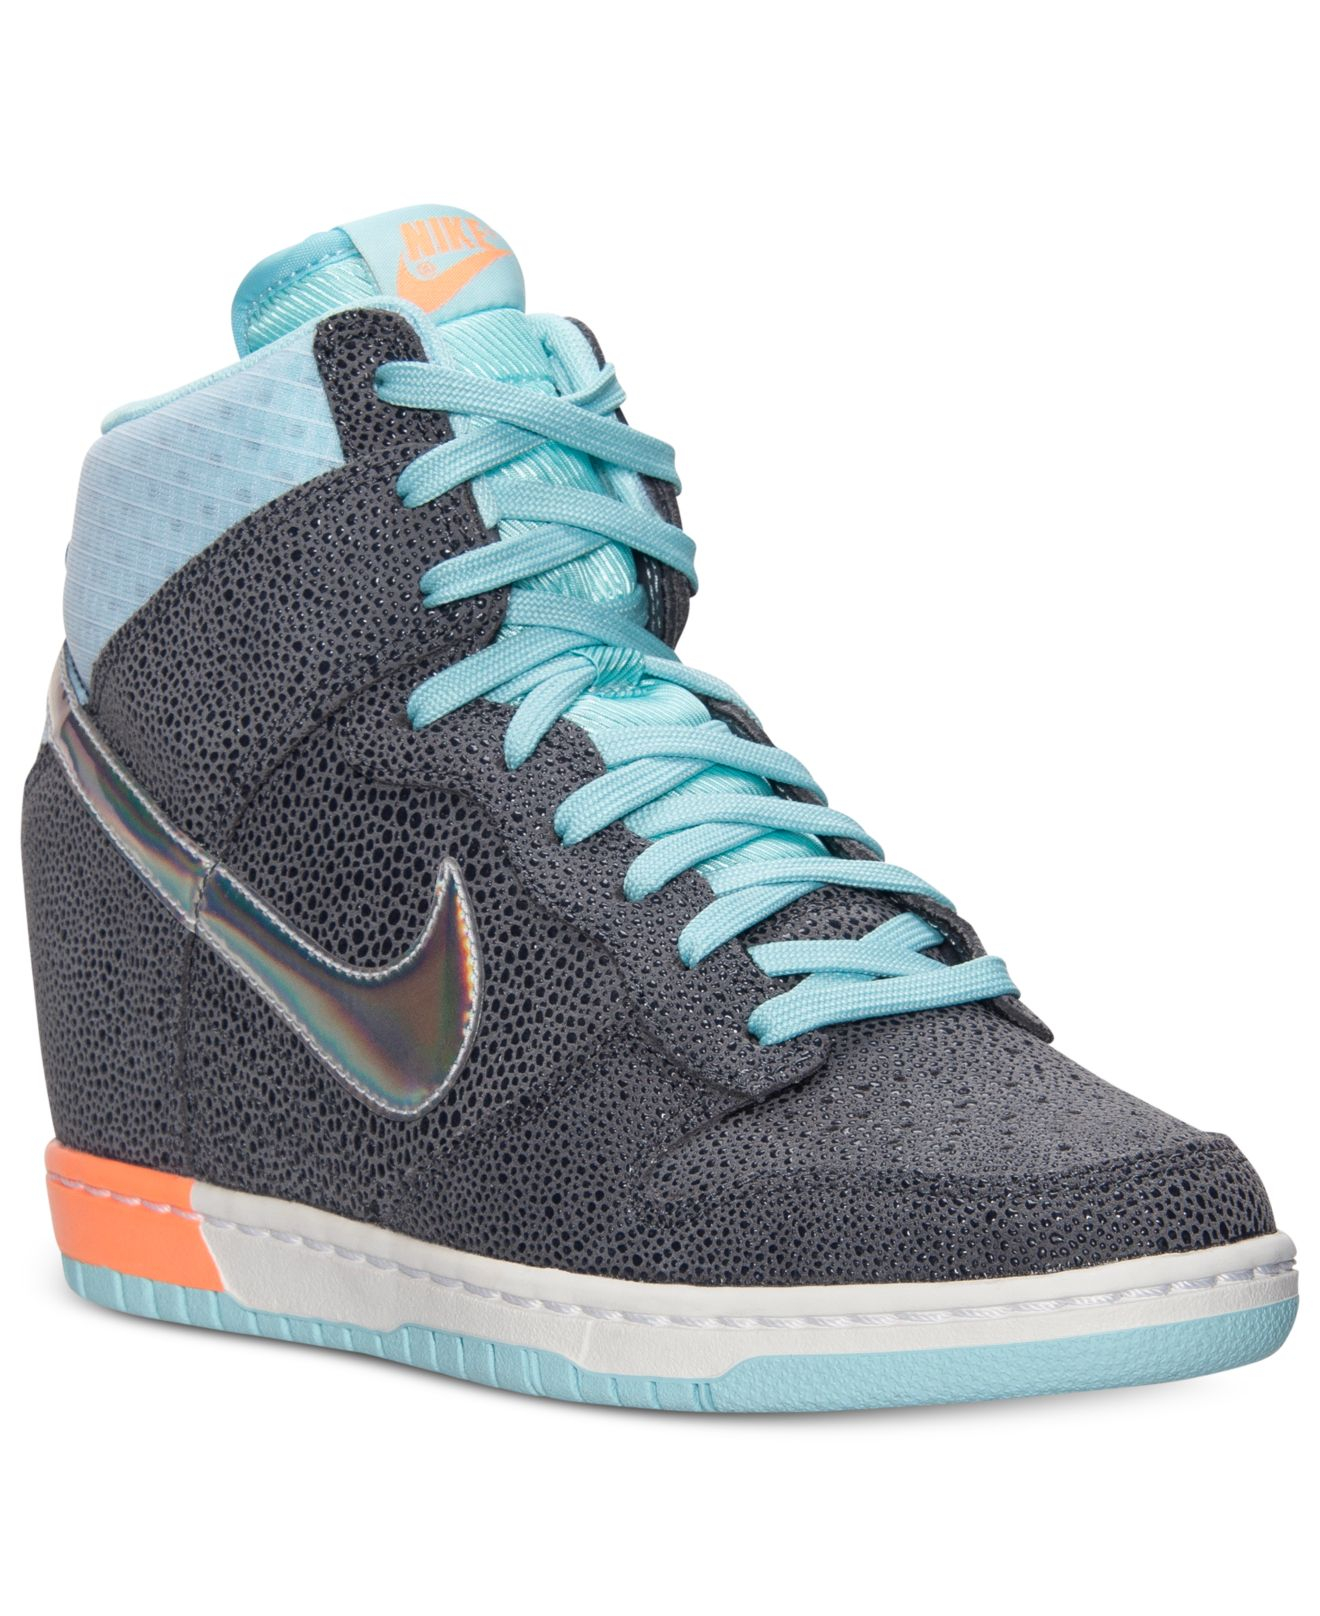 finest selection 6bb3c 56654 Lyst - Nike WomenS Dunk Sky High Premium Casual Sneakers Fro